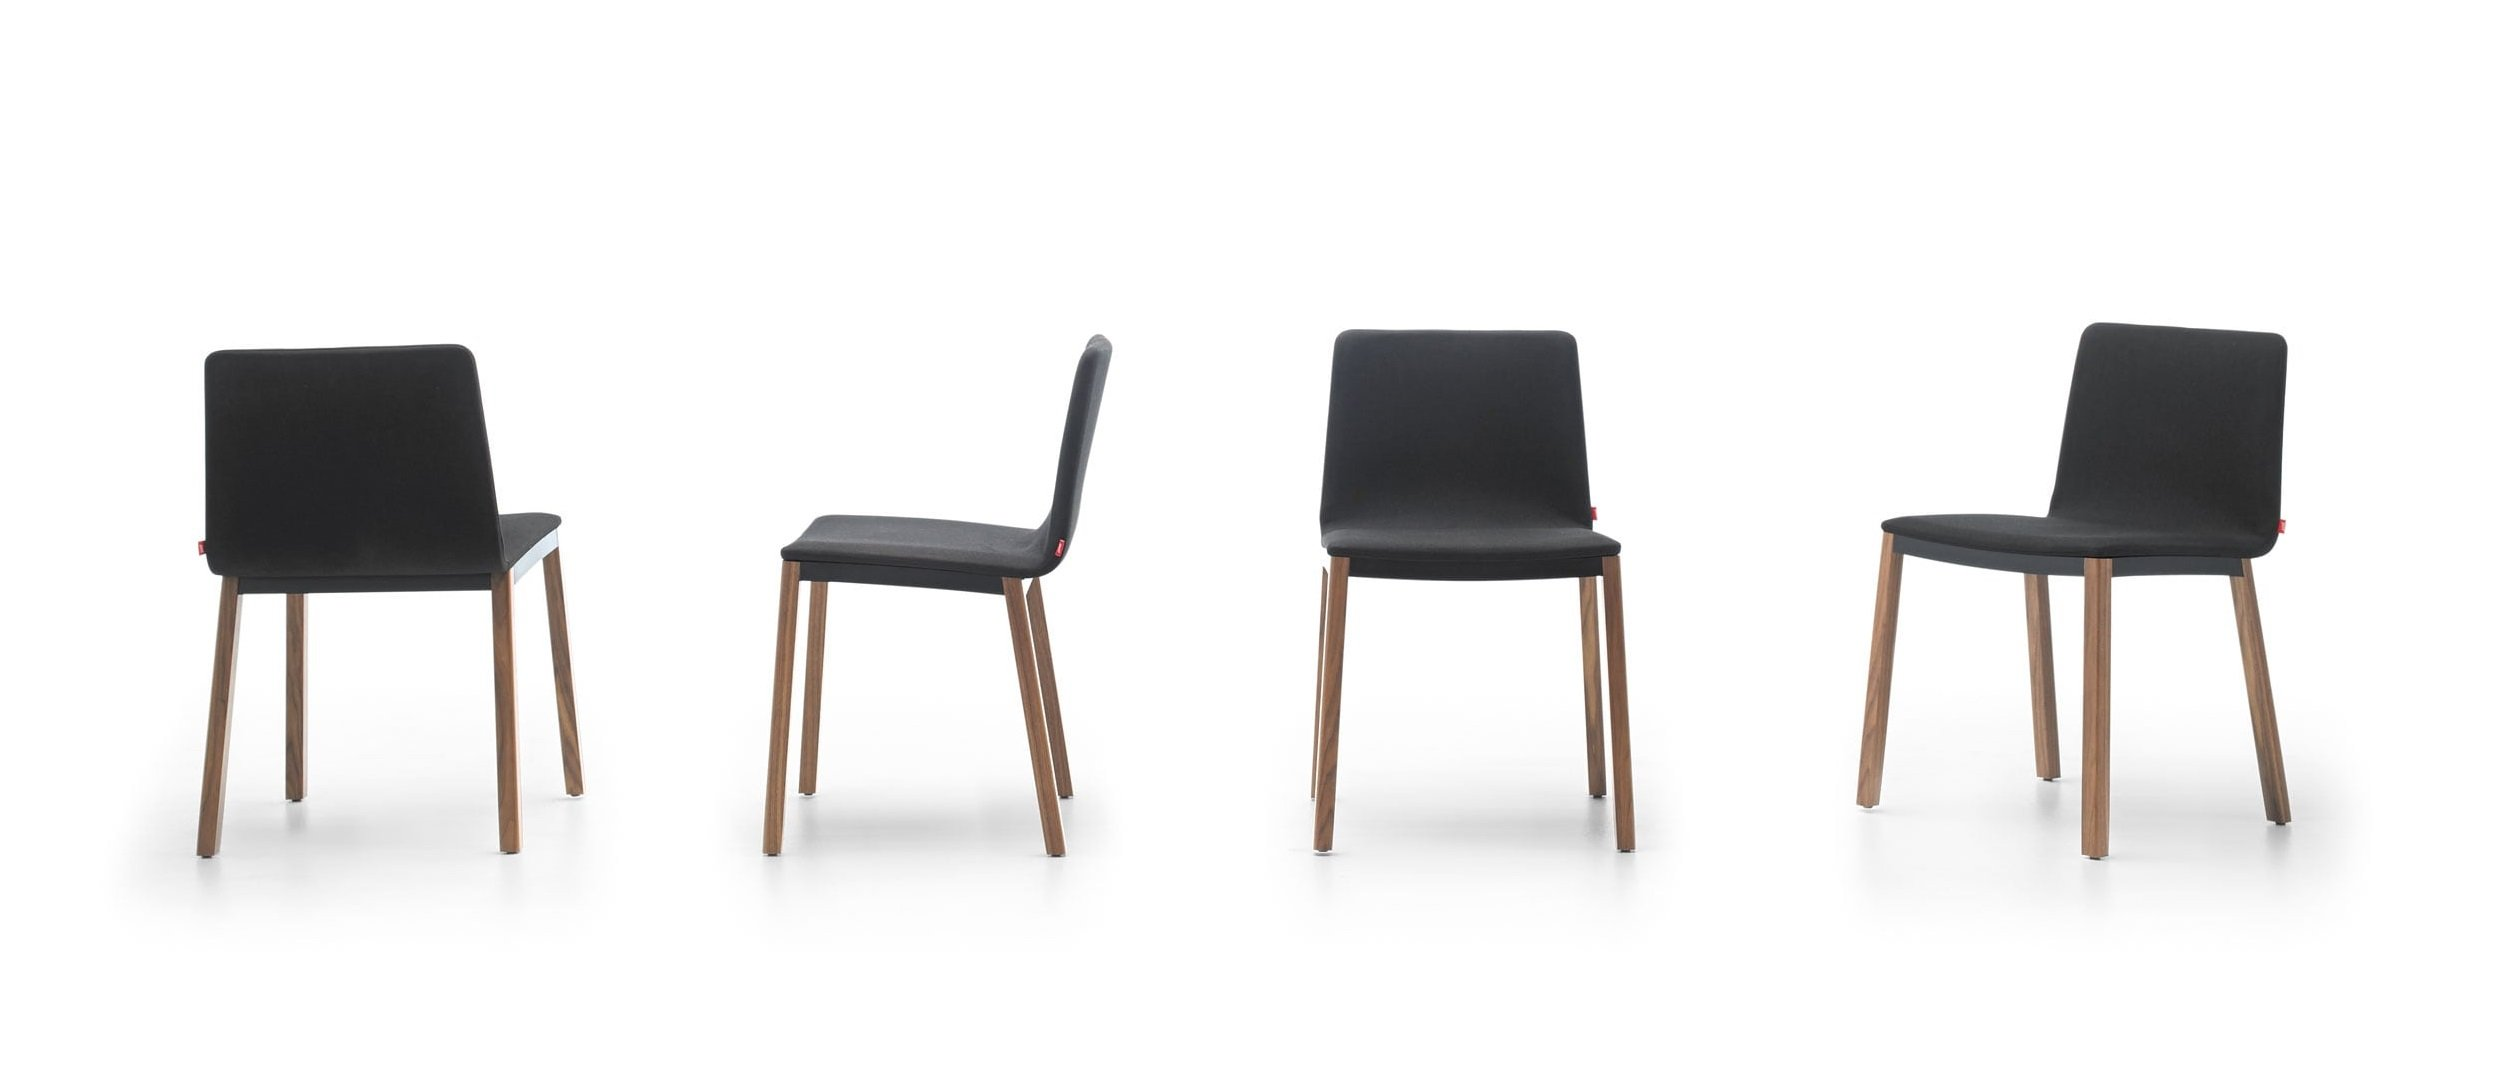 Tyris Dining Chair from Punt Mobles, designed by Odosdesign